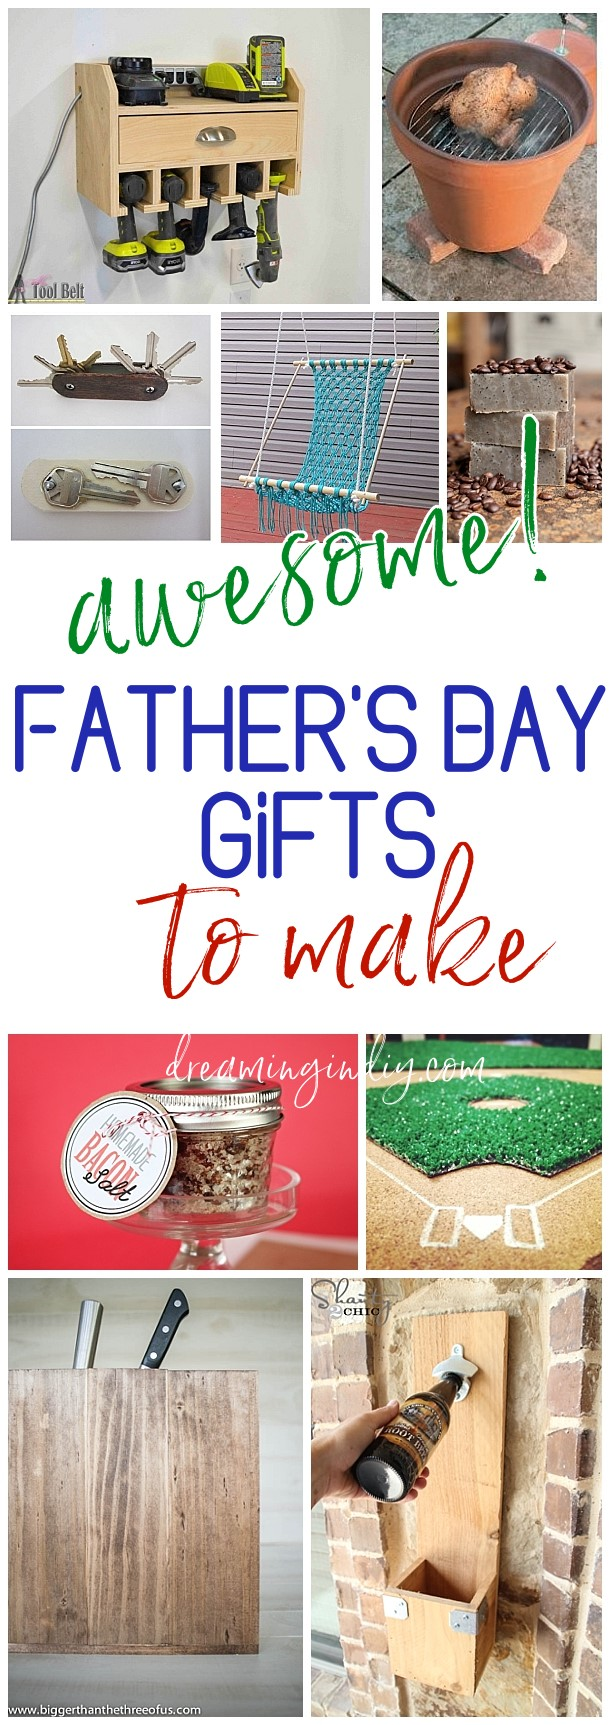 The Best Fathers Day Gifts to Make for Dads and Grandpas - Handmade DIY craft project tutorials - great masculine gifts for men and boys birthdays too! - Dreaming in DIY #fathersday #diygiftsfordad #giftsfordads #giftsforgrandpas #giftsforhim #masculinegifts #diygiftsforhim #fathersdayparty #diyfathersdaygifts